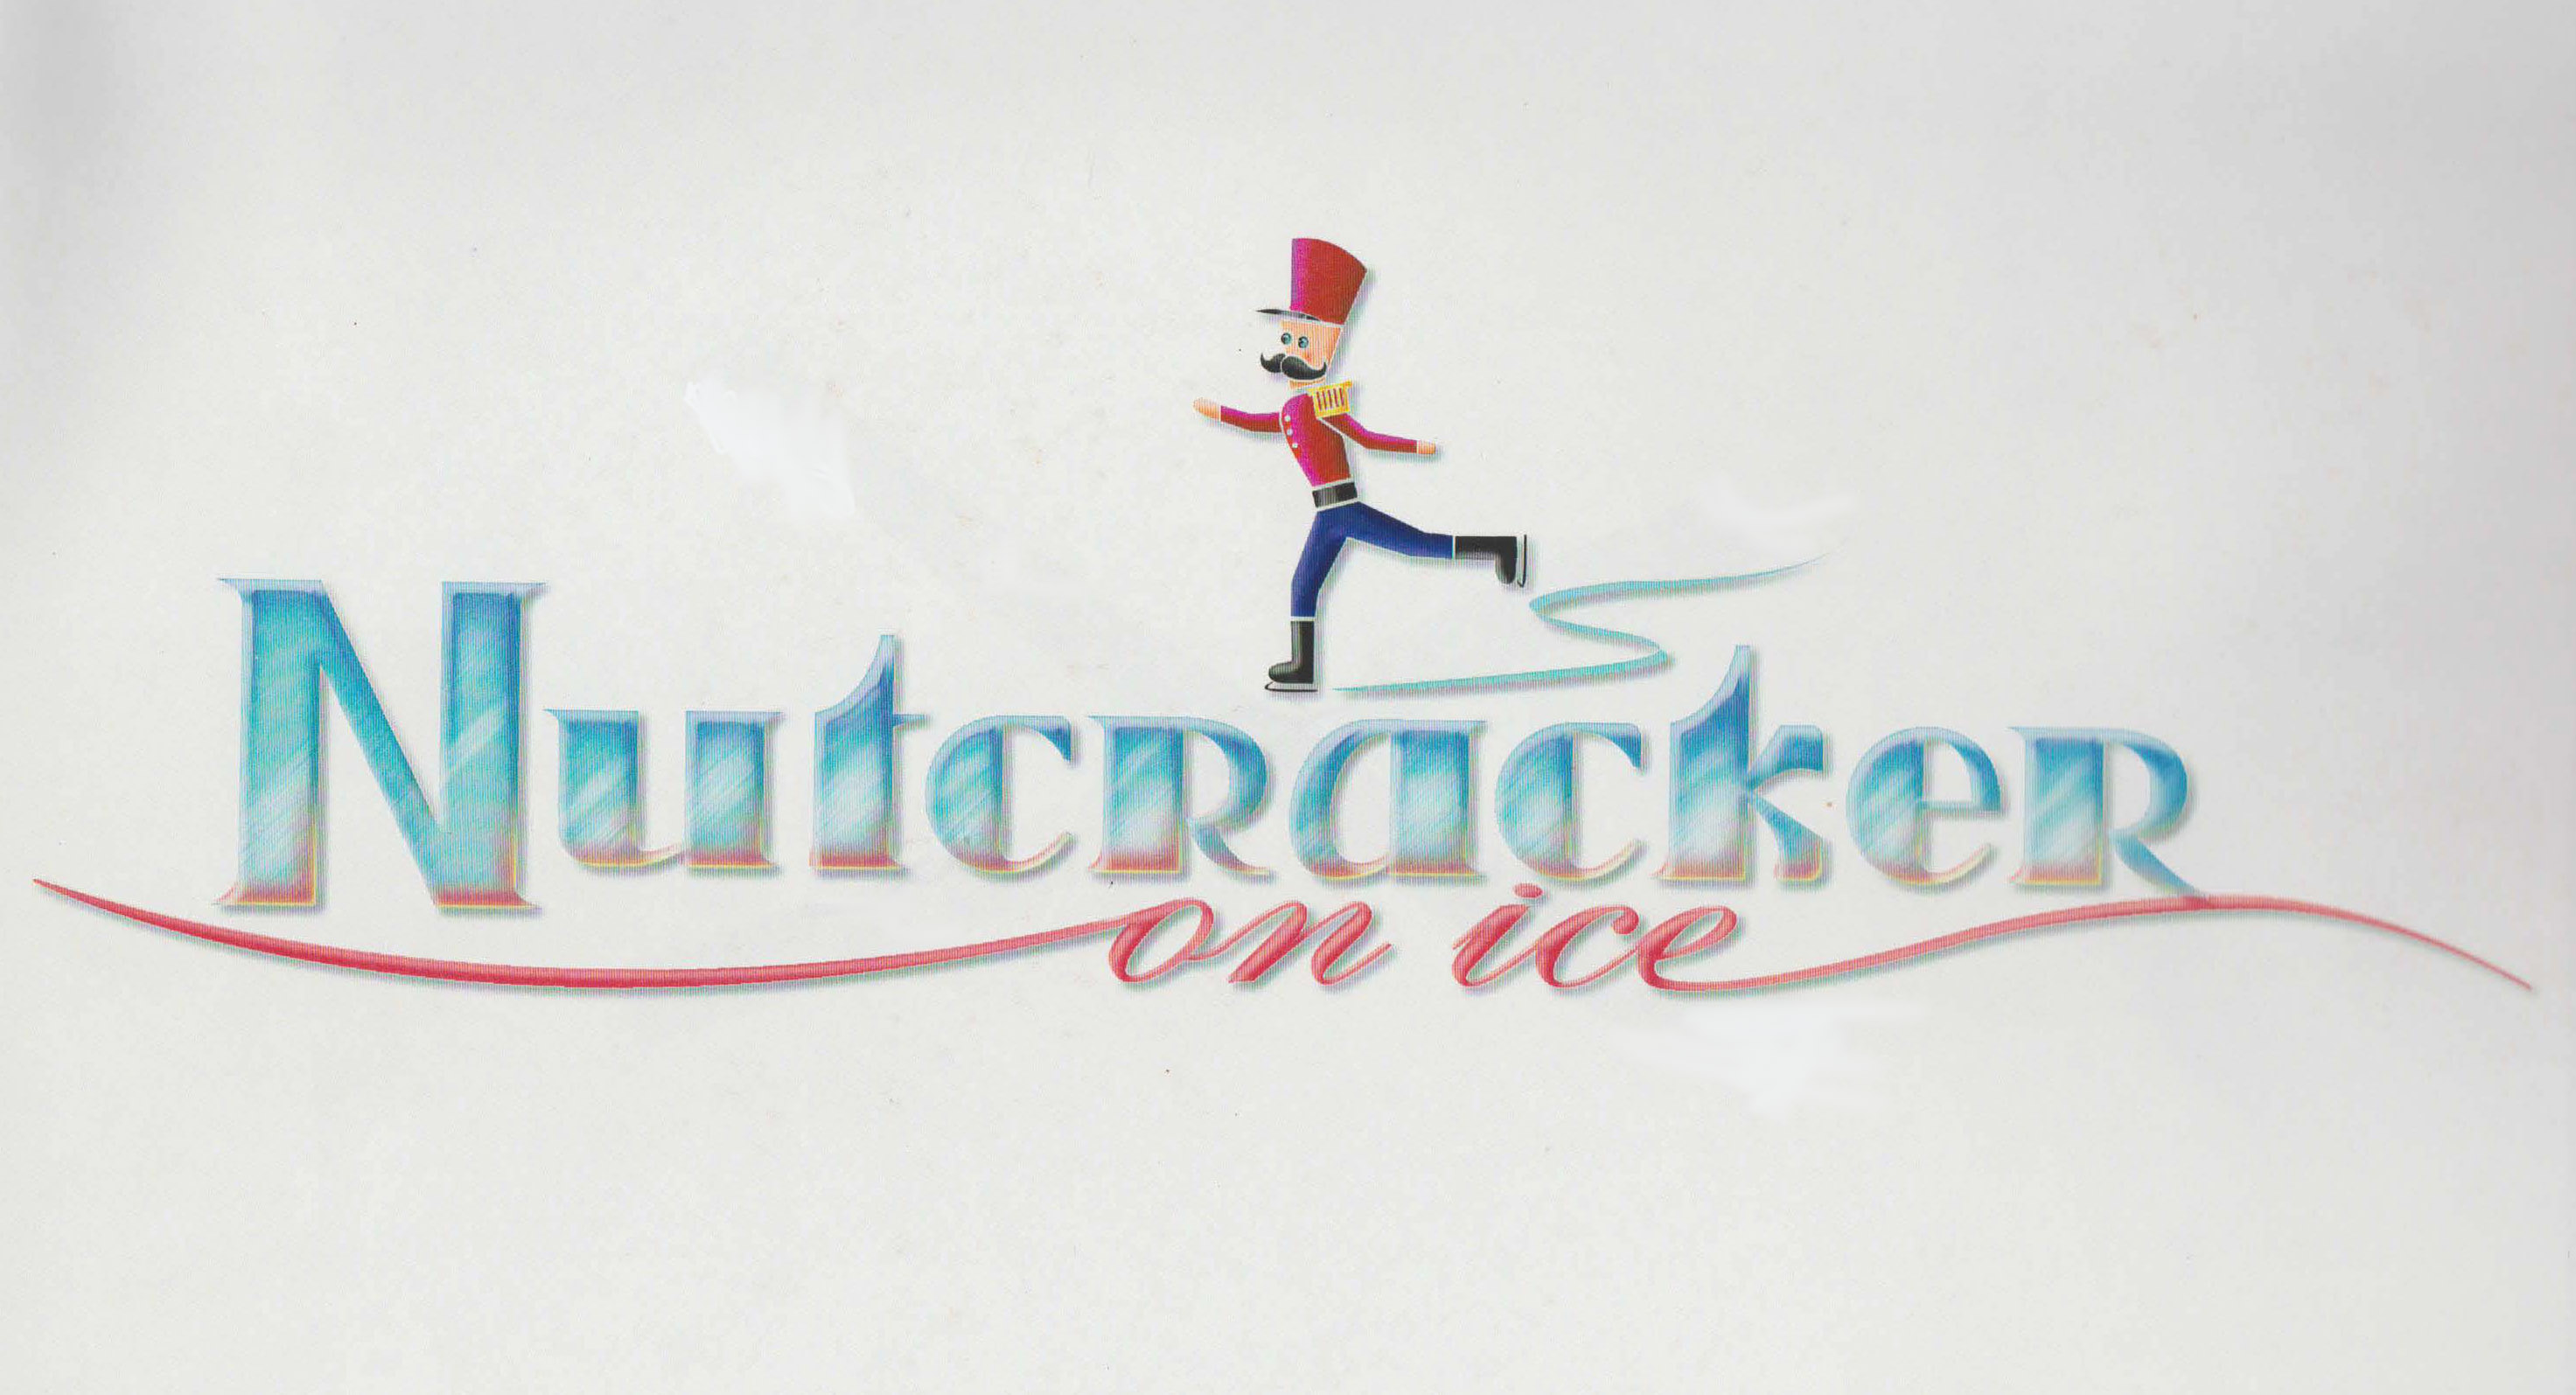 Nutcracker Color Logo